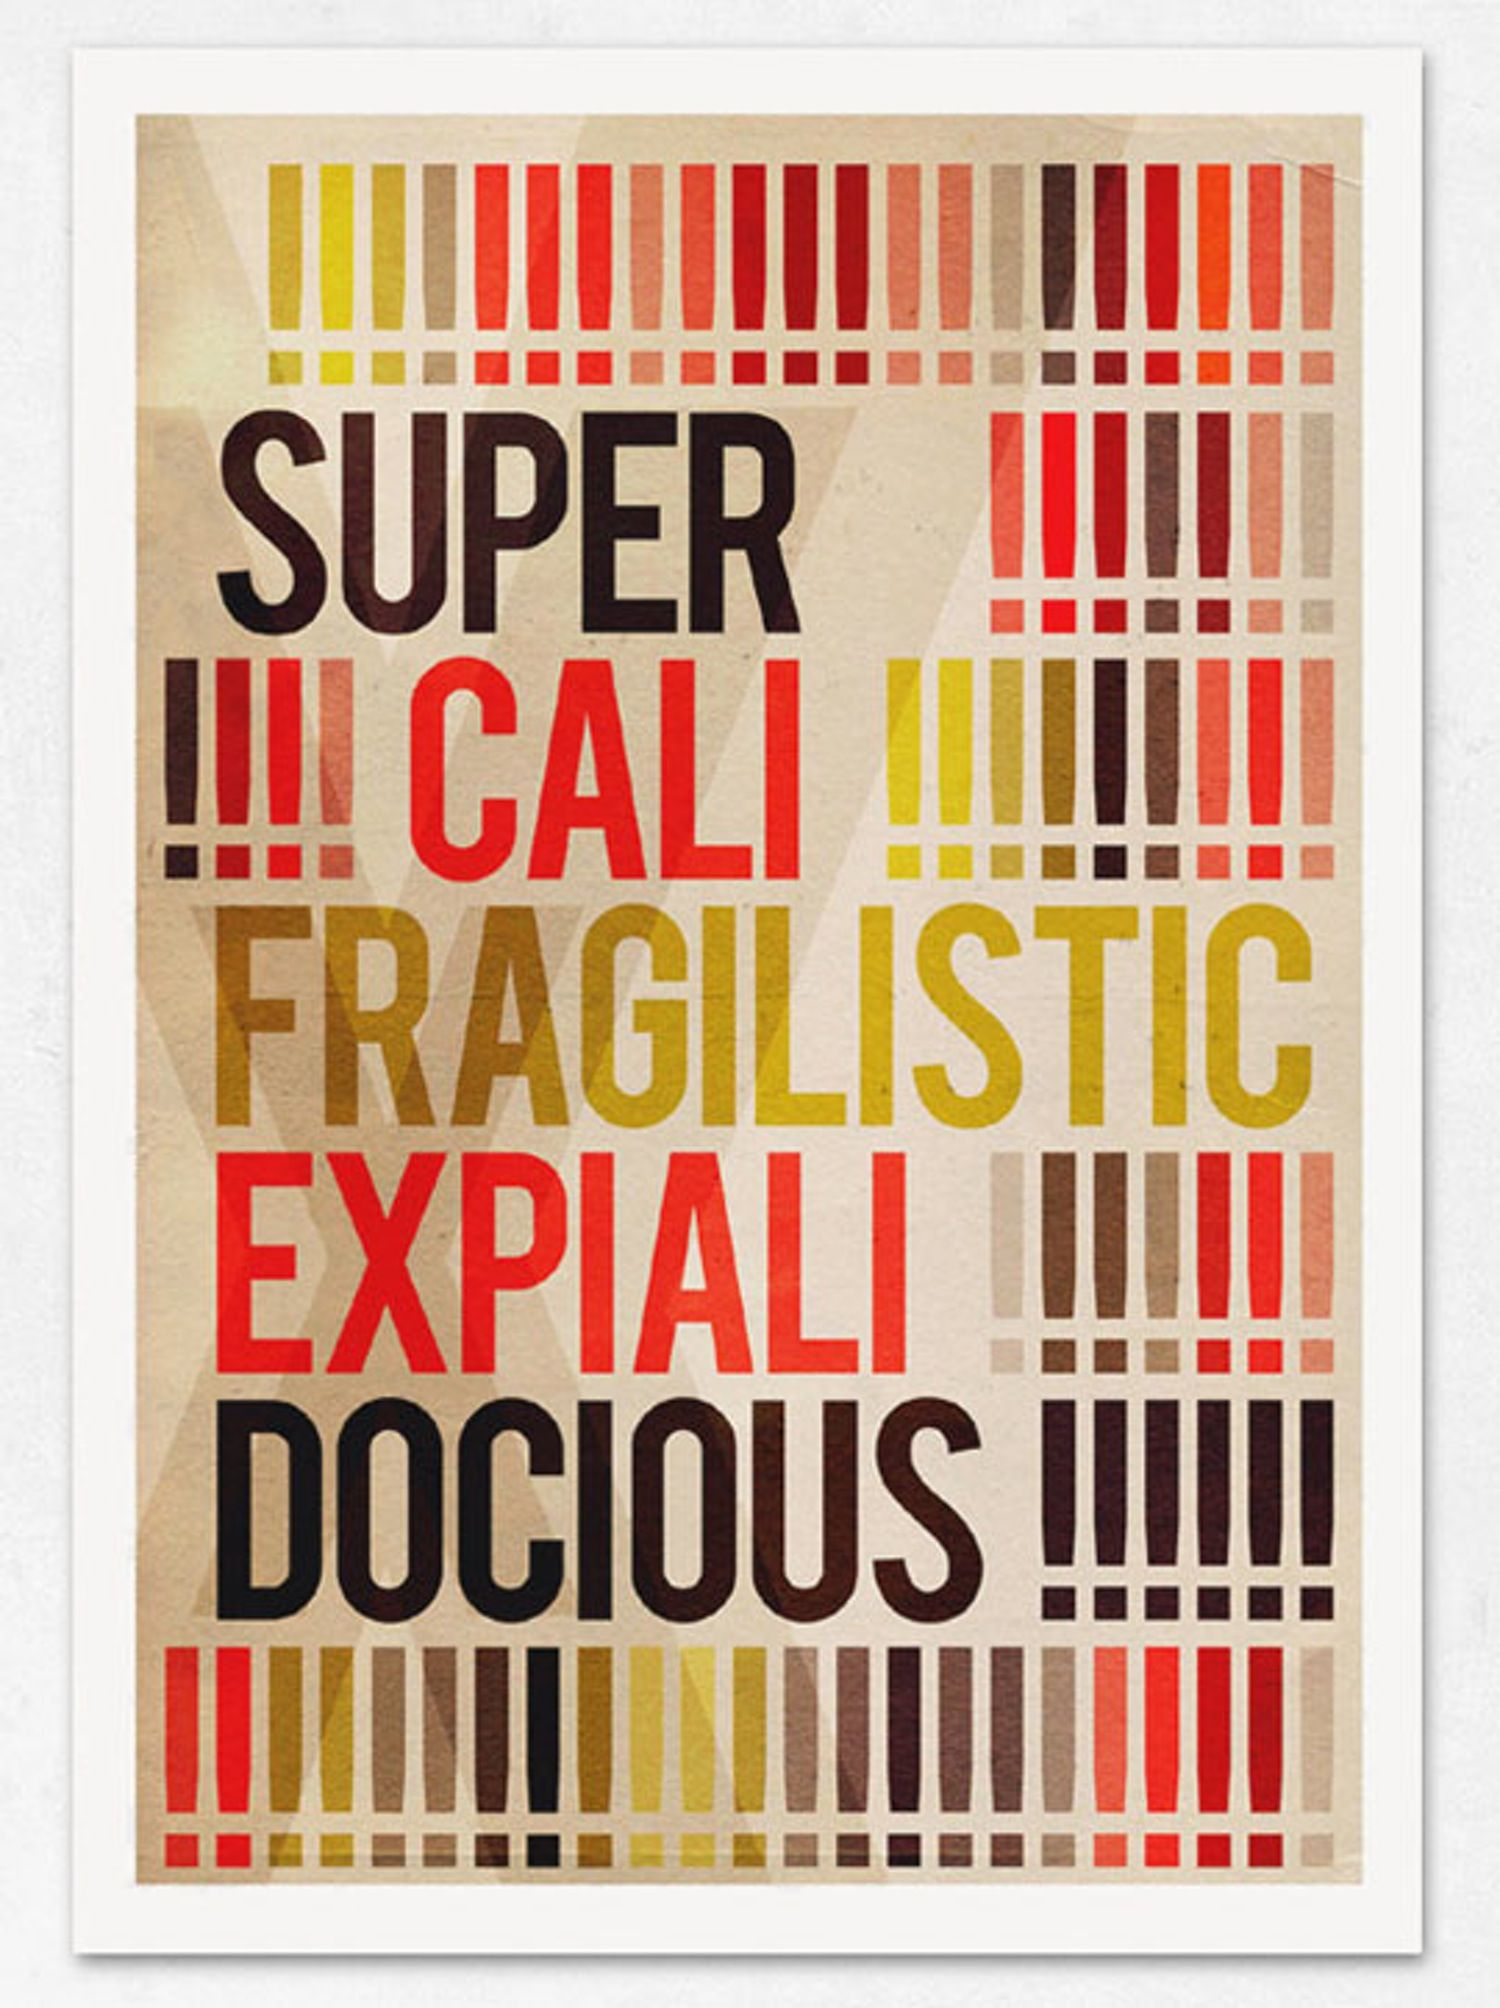 Supercalifragilisticexpialidocious — On the Wall